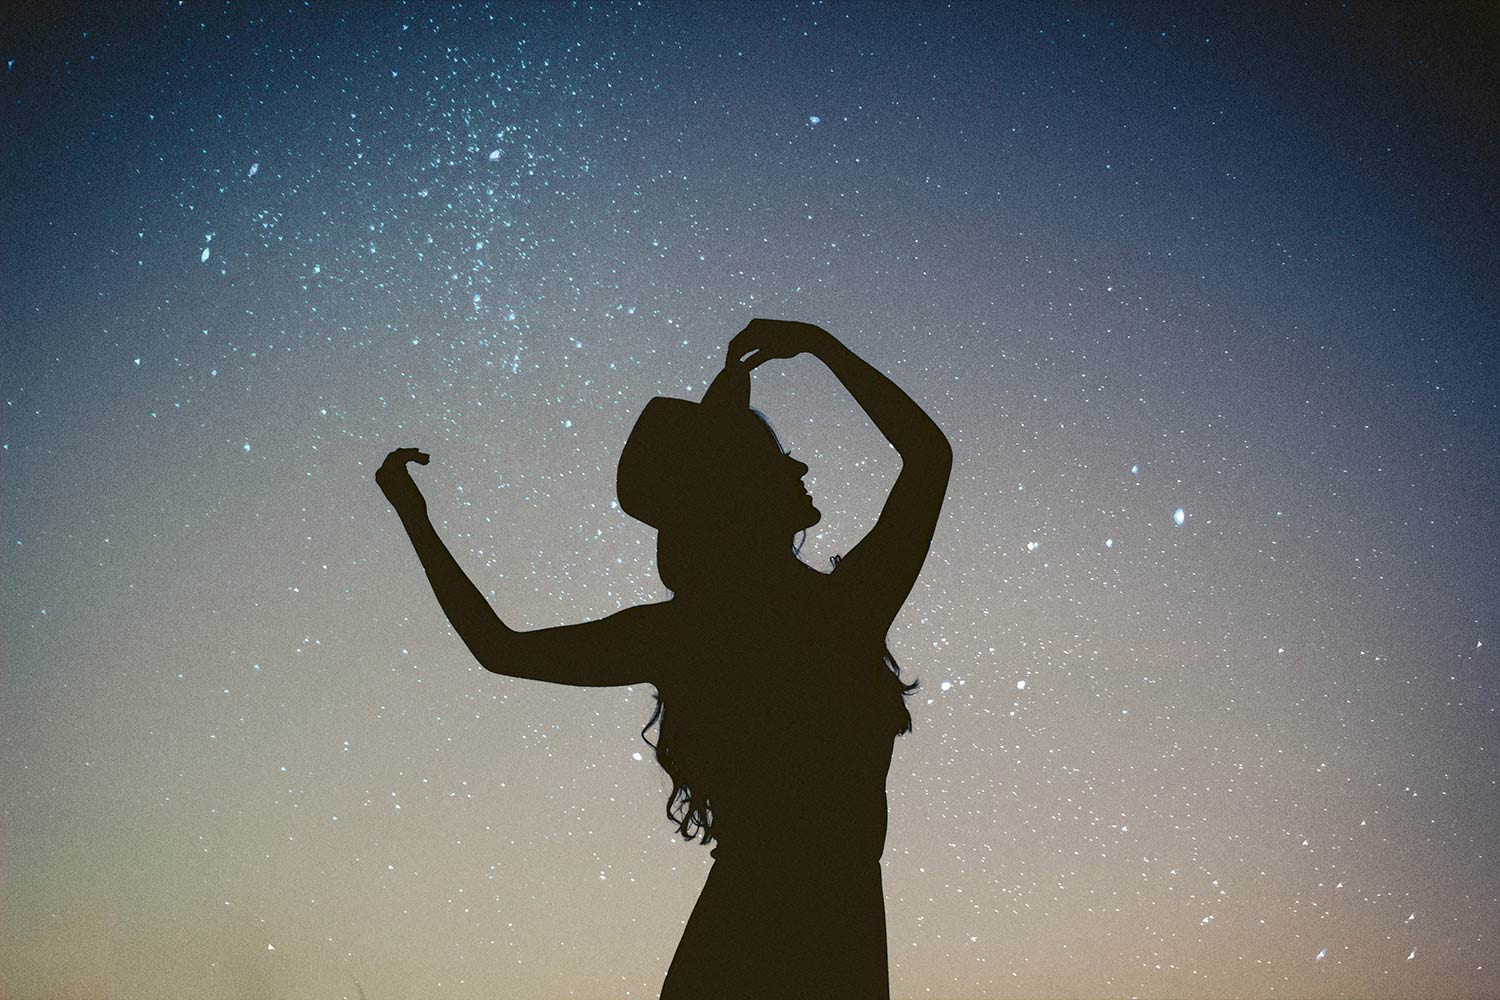 A dancing woman silhouetted by the stars. Life lessons in addiction recovery